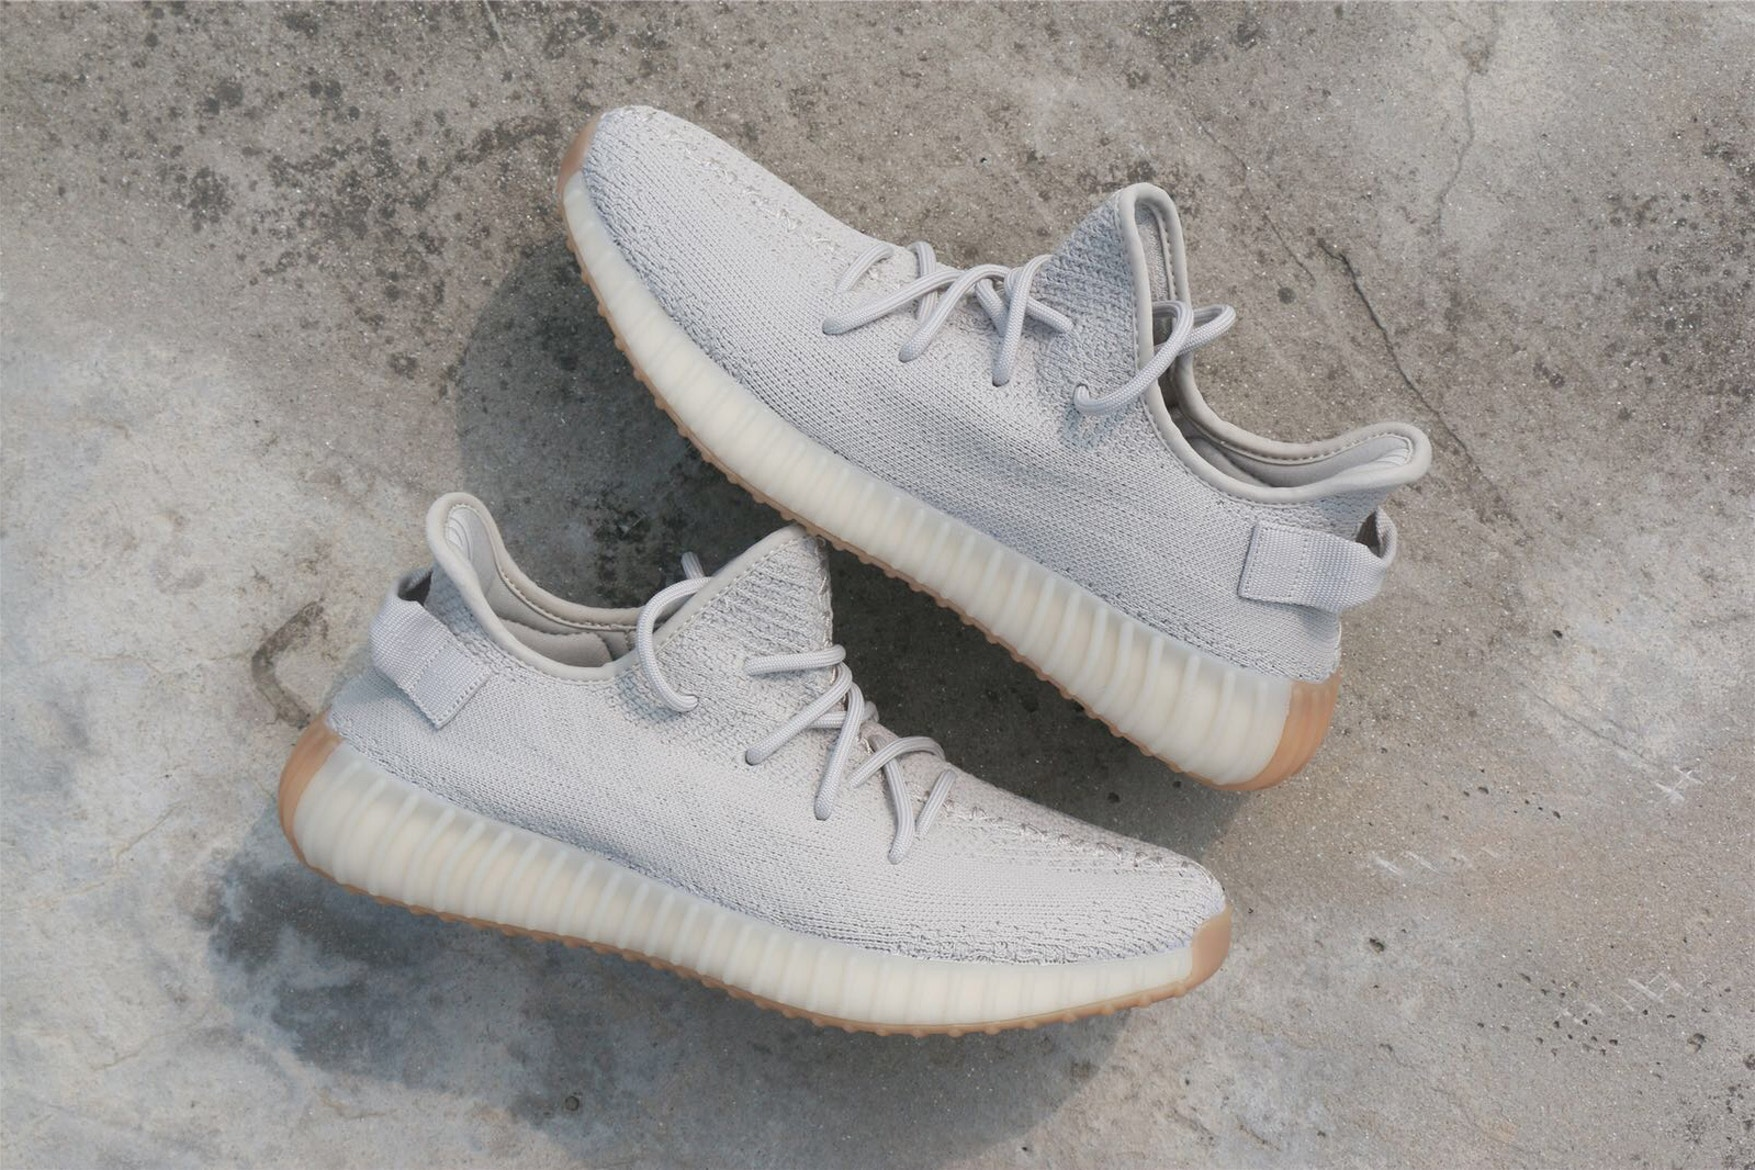 adidas-yeezy-boost-350-v2-sesame-first-look-4